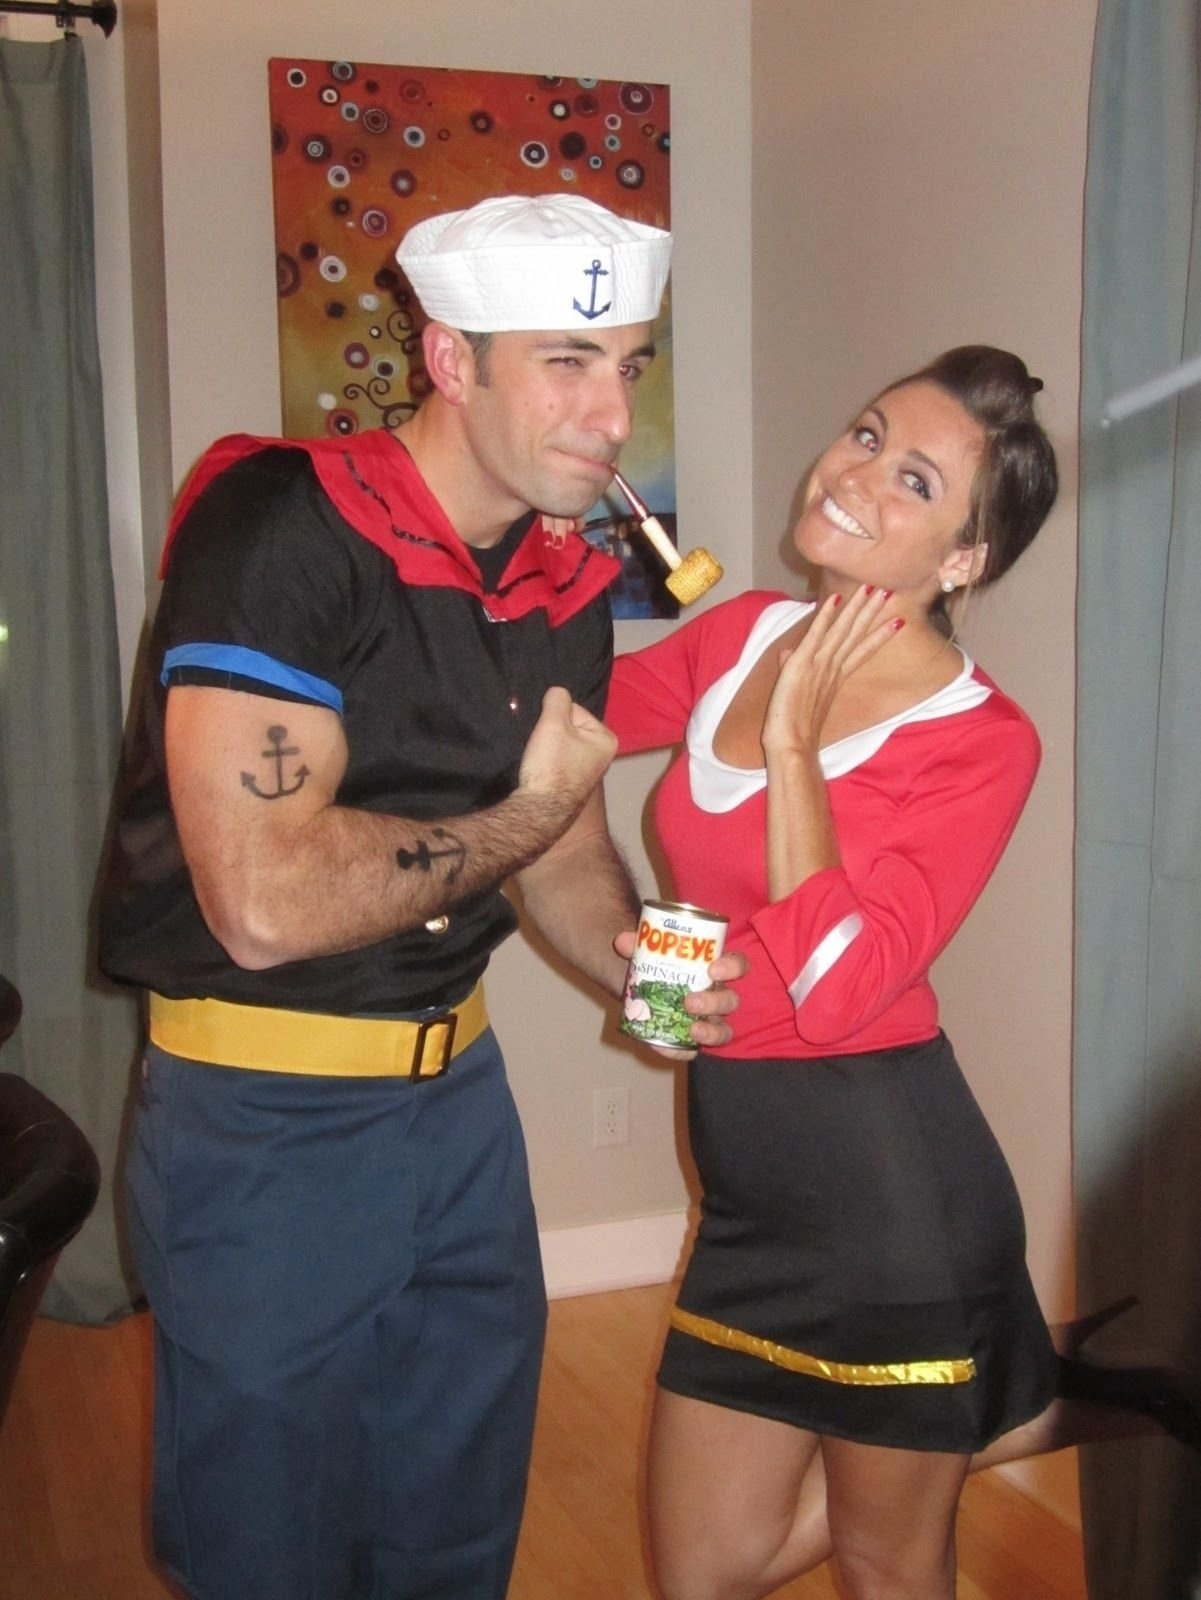 10 Best Unique Couple Halloween Costume Ideas popeye olive oyl costumes pinterest popeye olive oyl